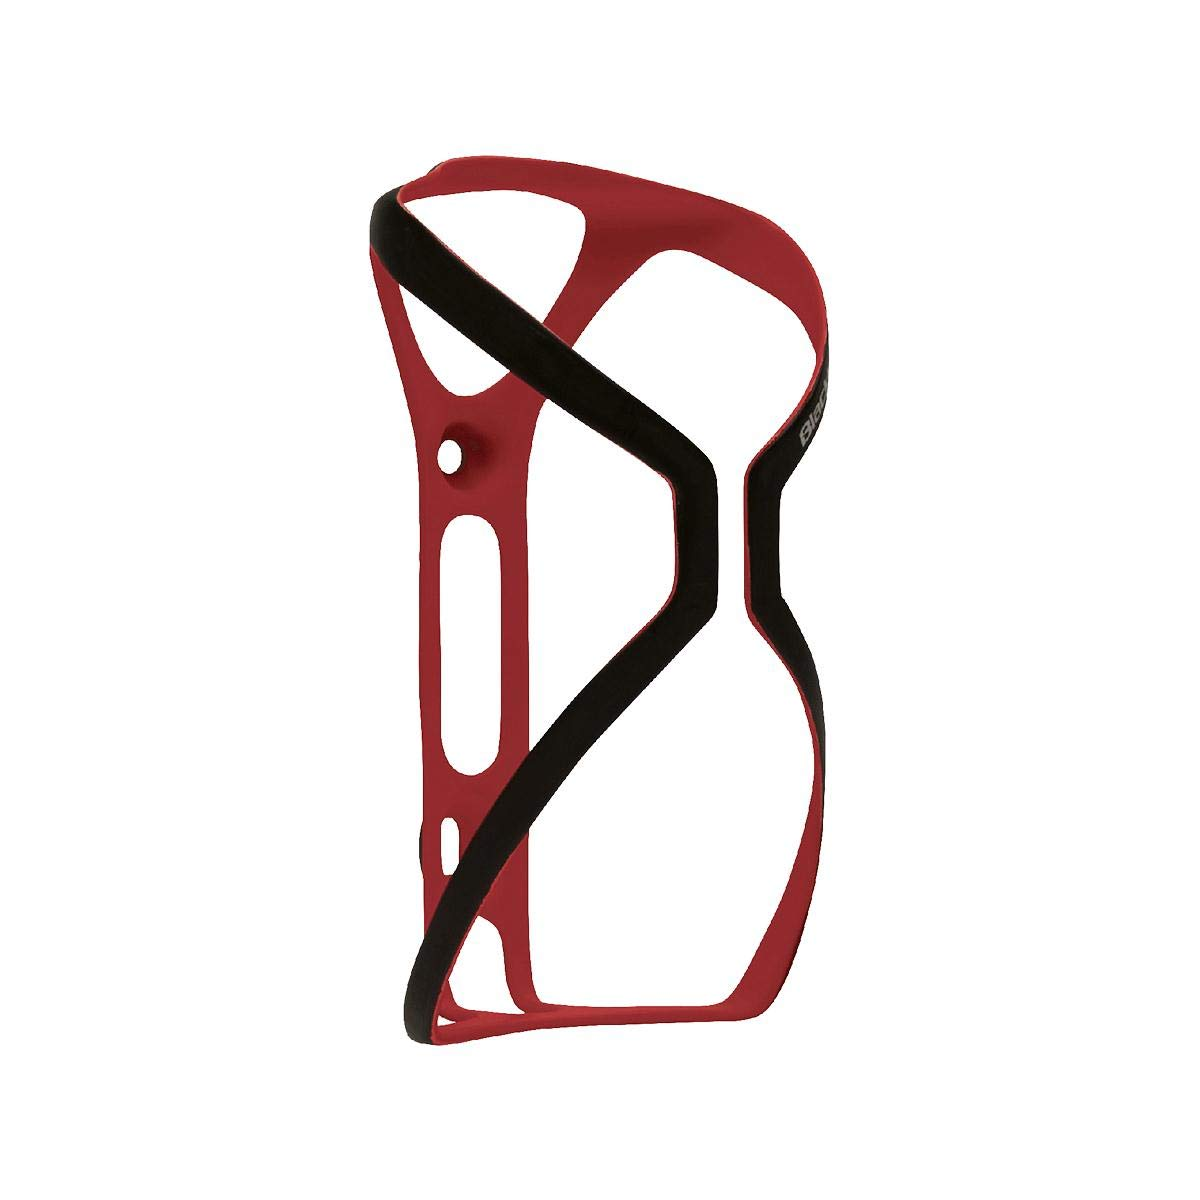 Blackburn Cinch Carbon Fiber Bottle Cage - Gloss Red by Blackburn